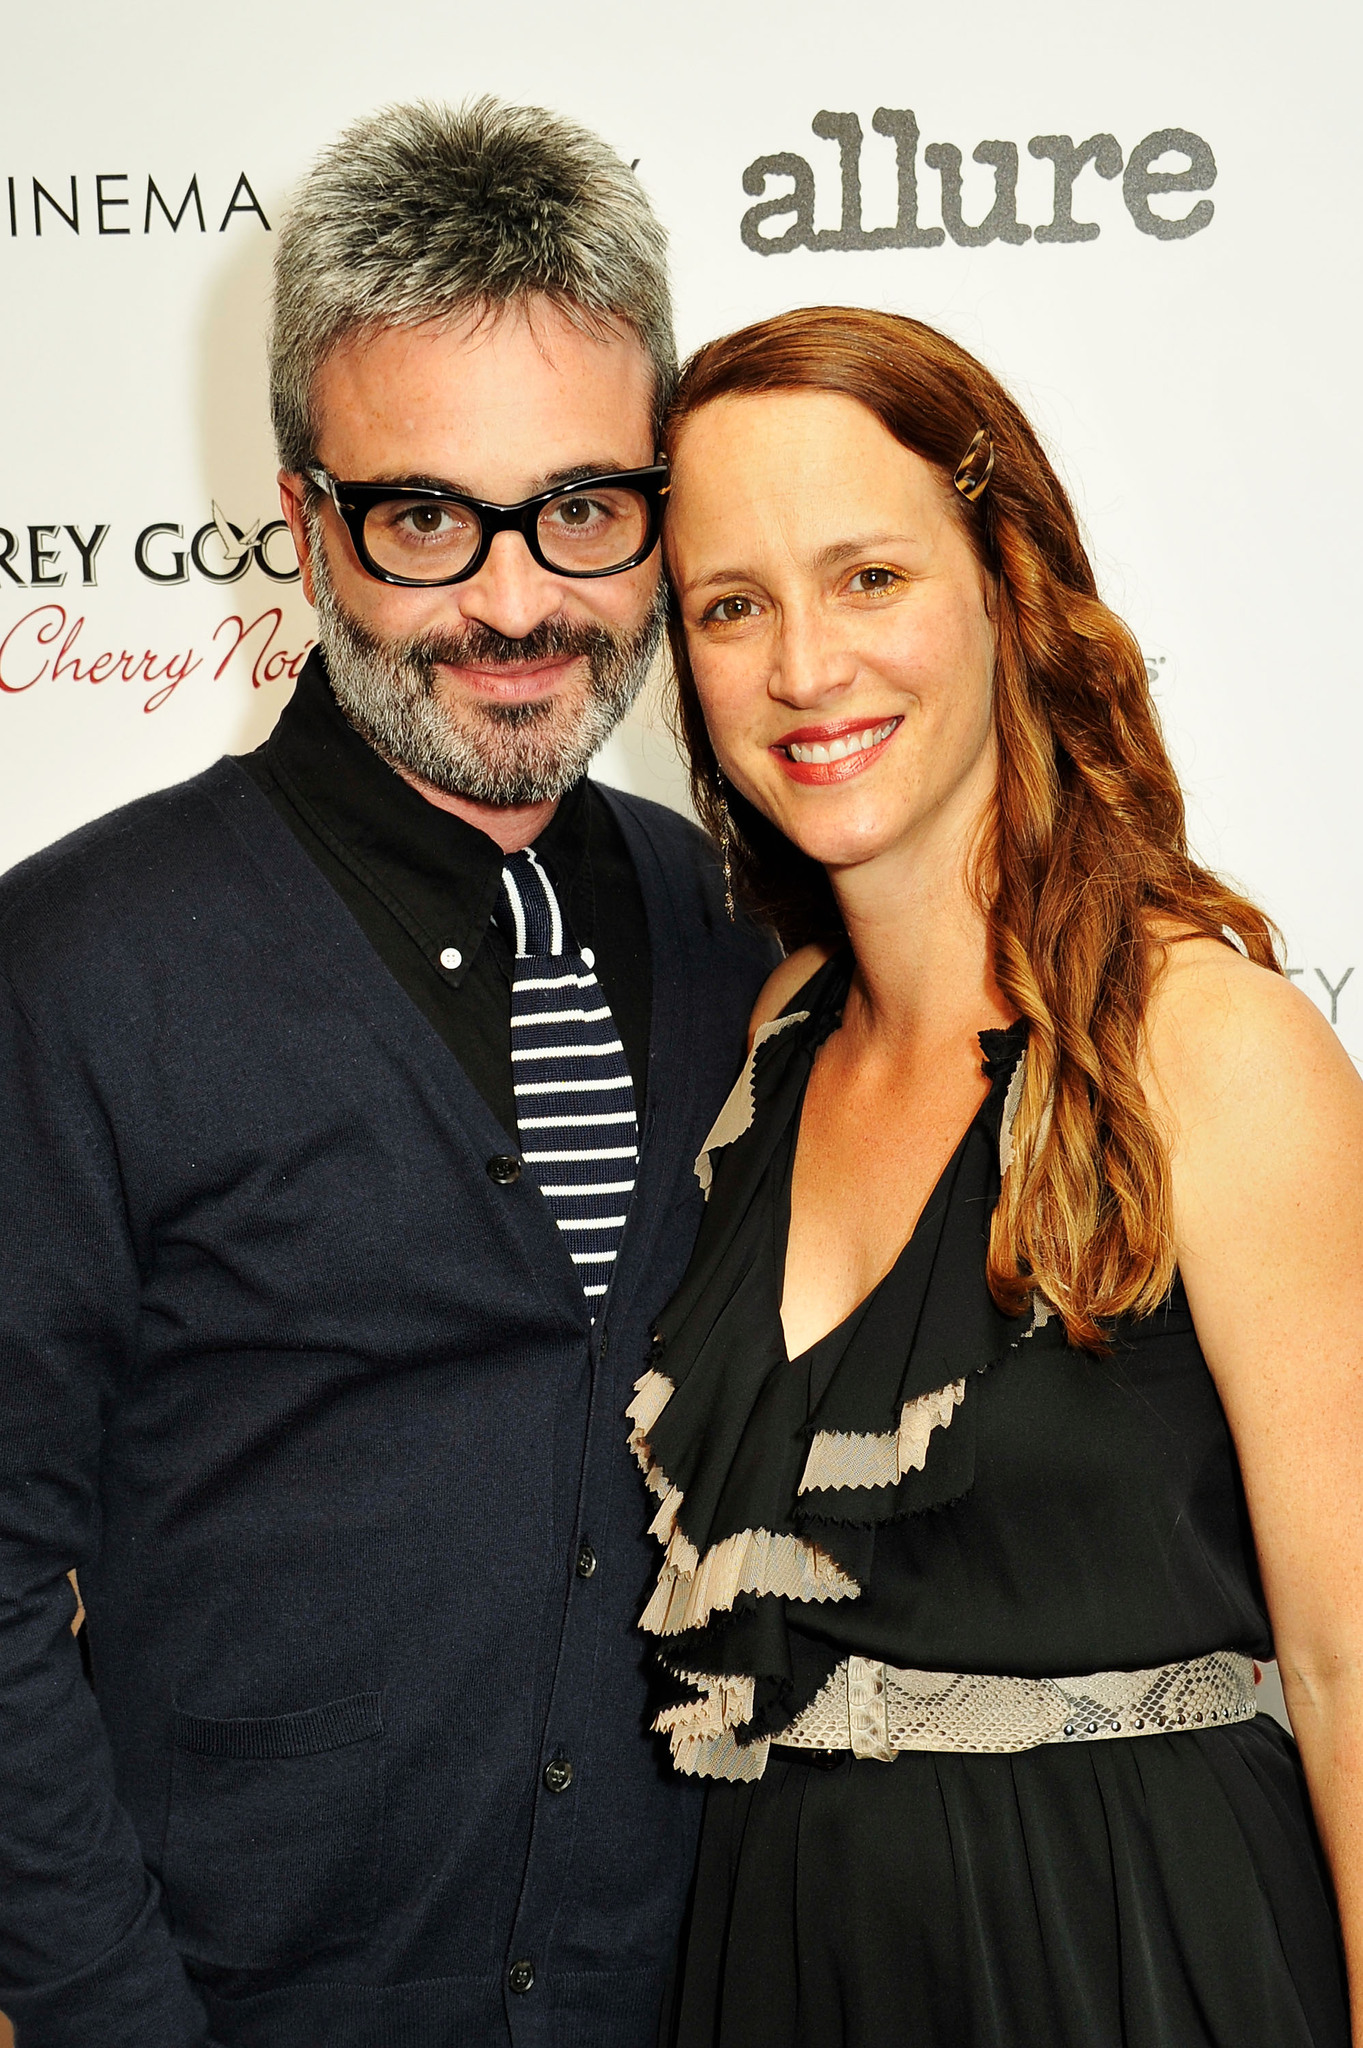 Samantha Counter and Alex Kurtzman at an event for People Like Us (2012)